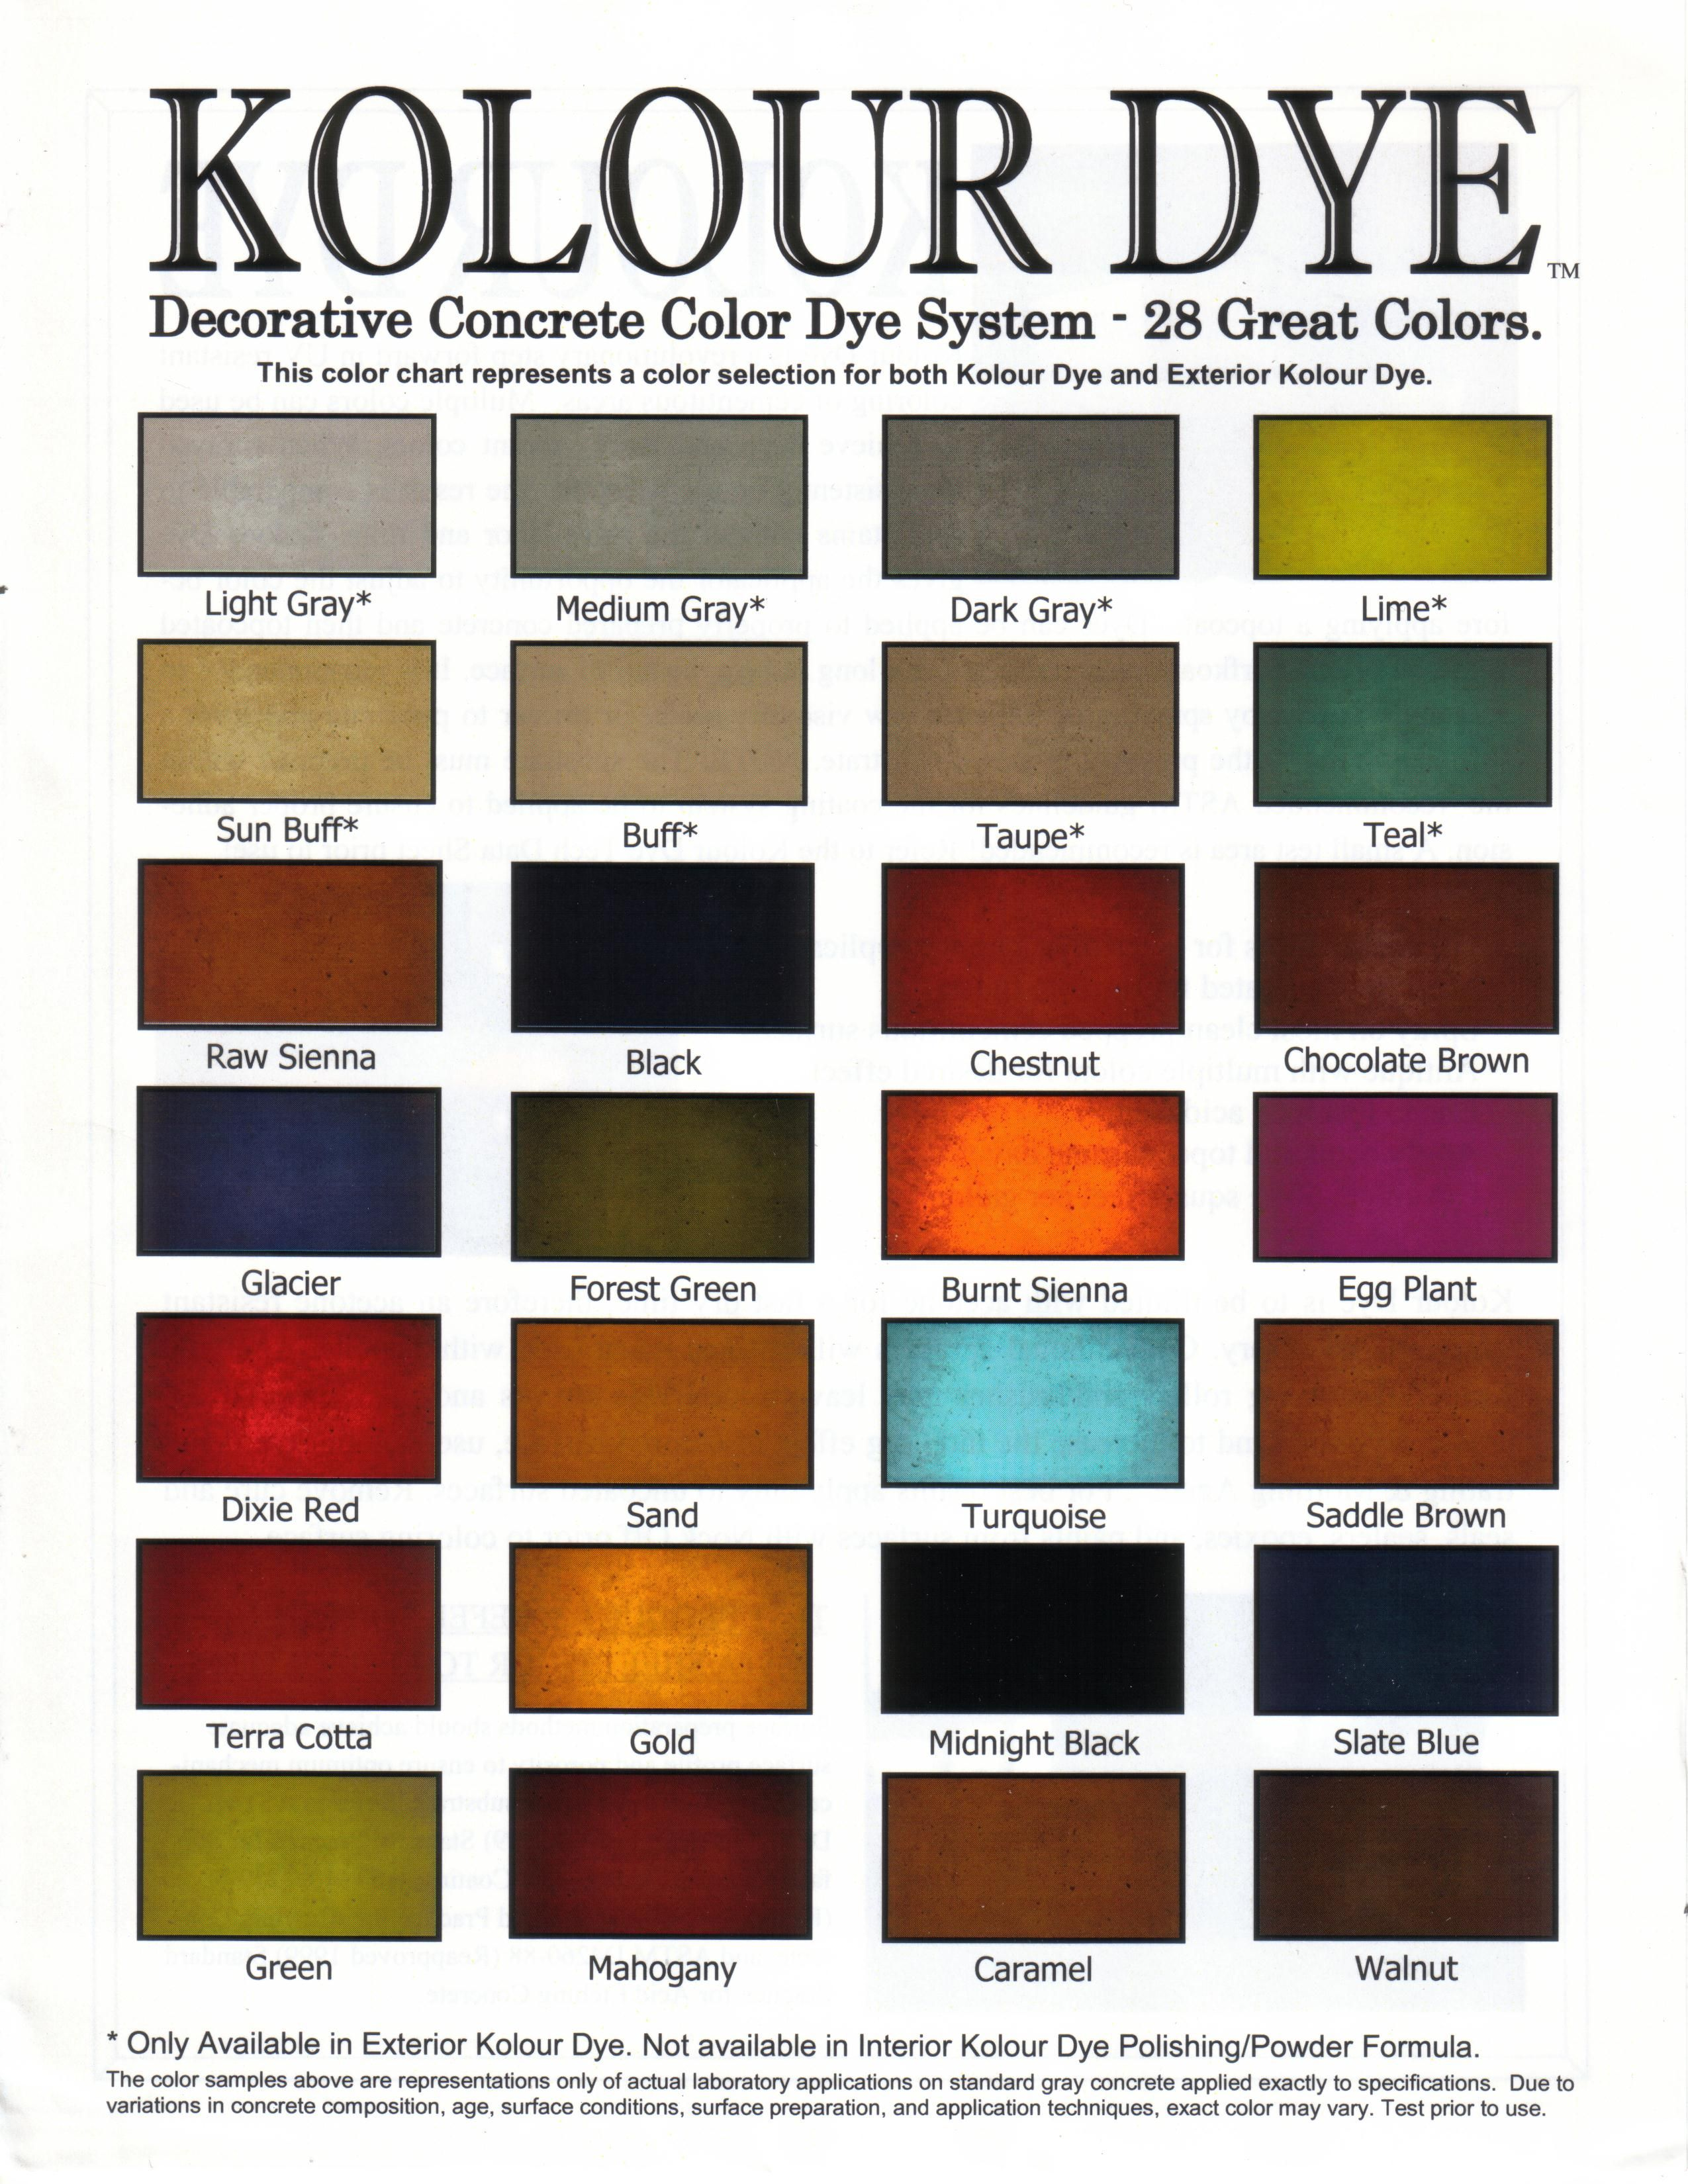 New home depot wood stain colors 8 interior do - Interior wood stain colors home depot ...